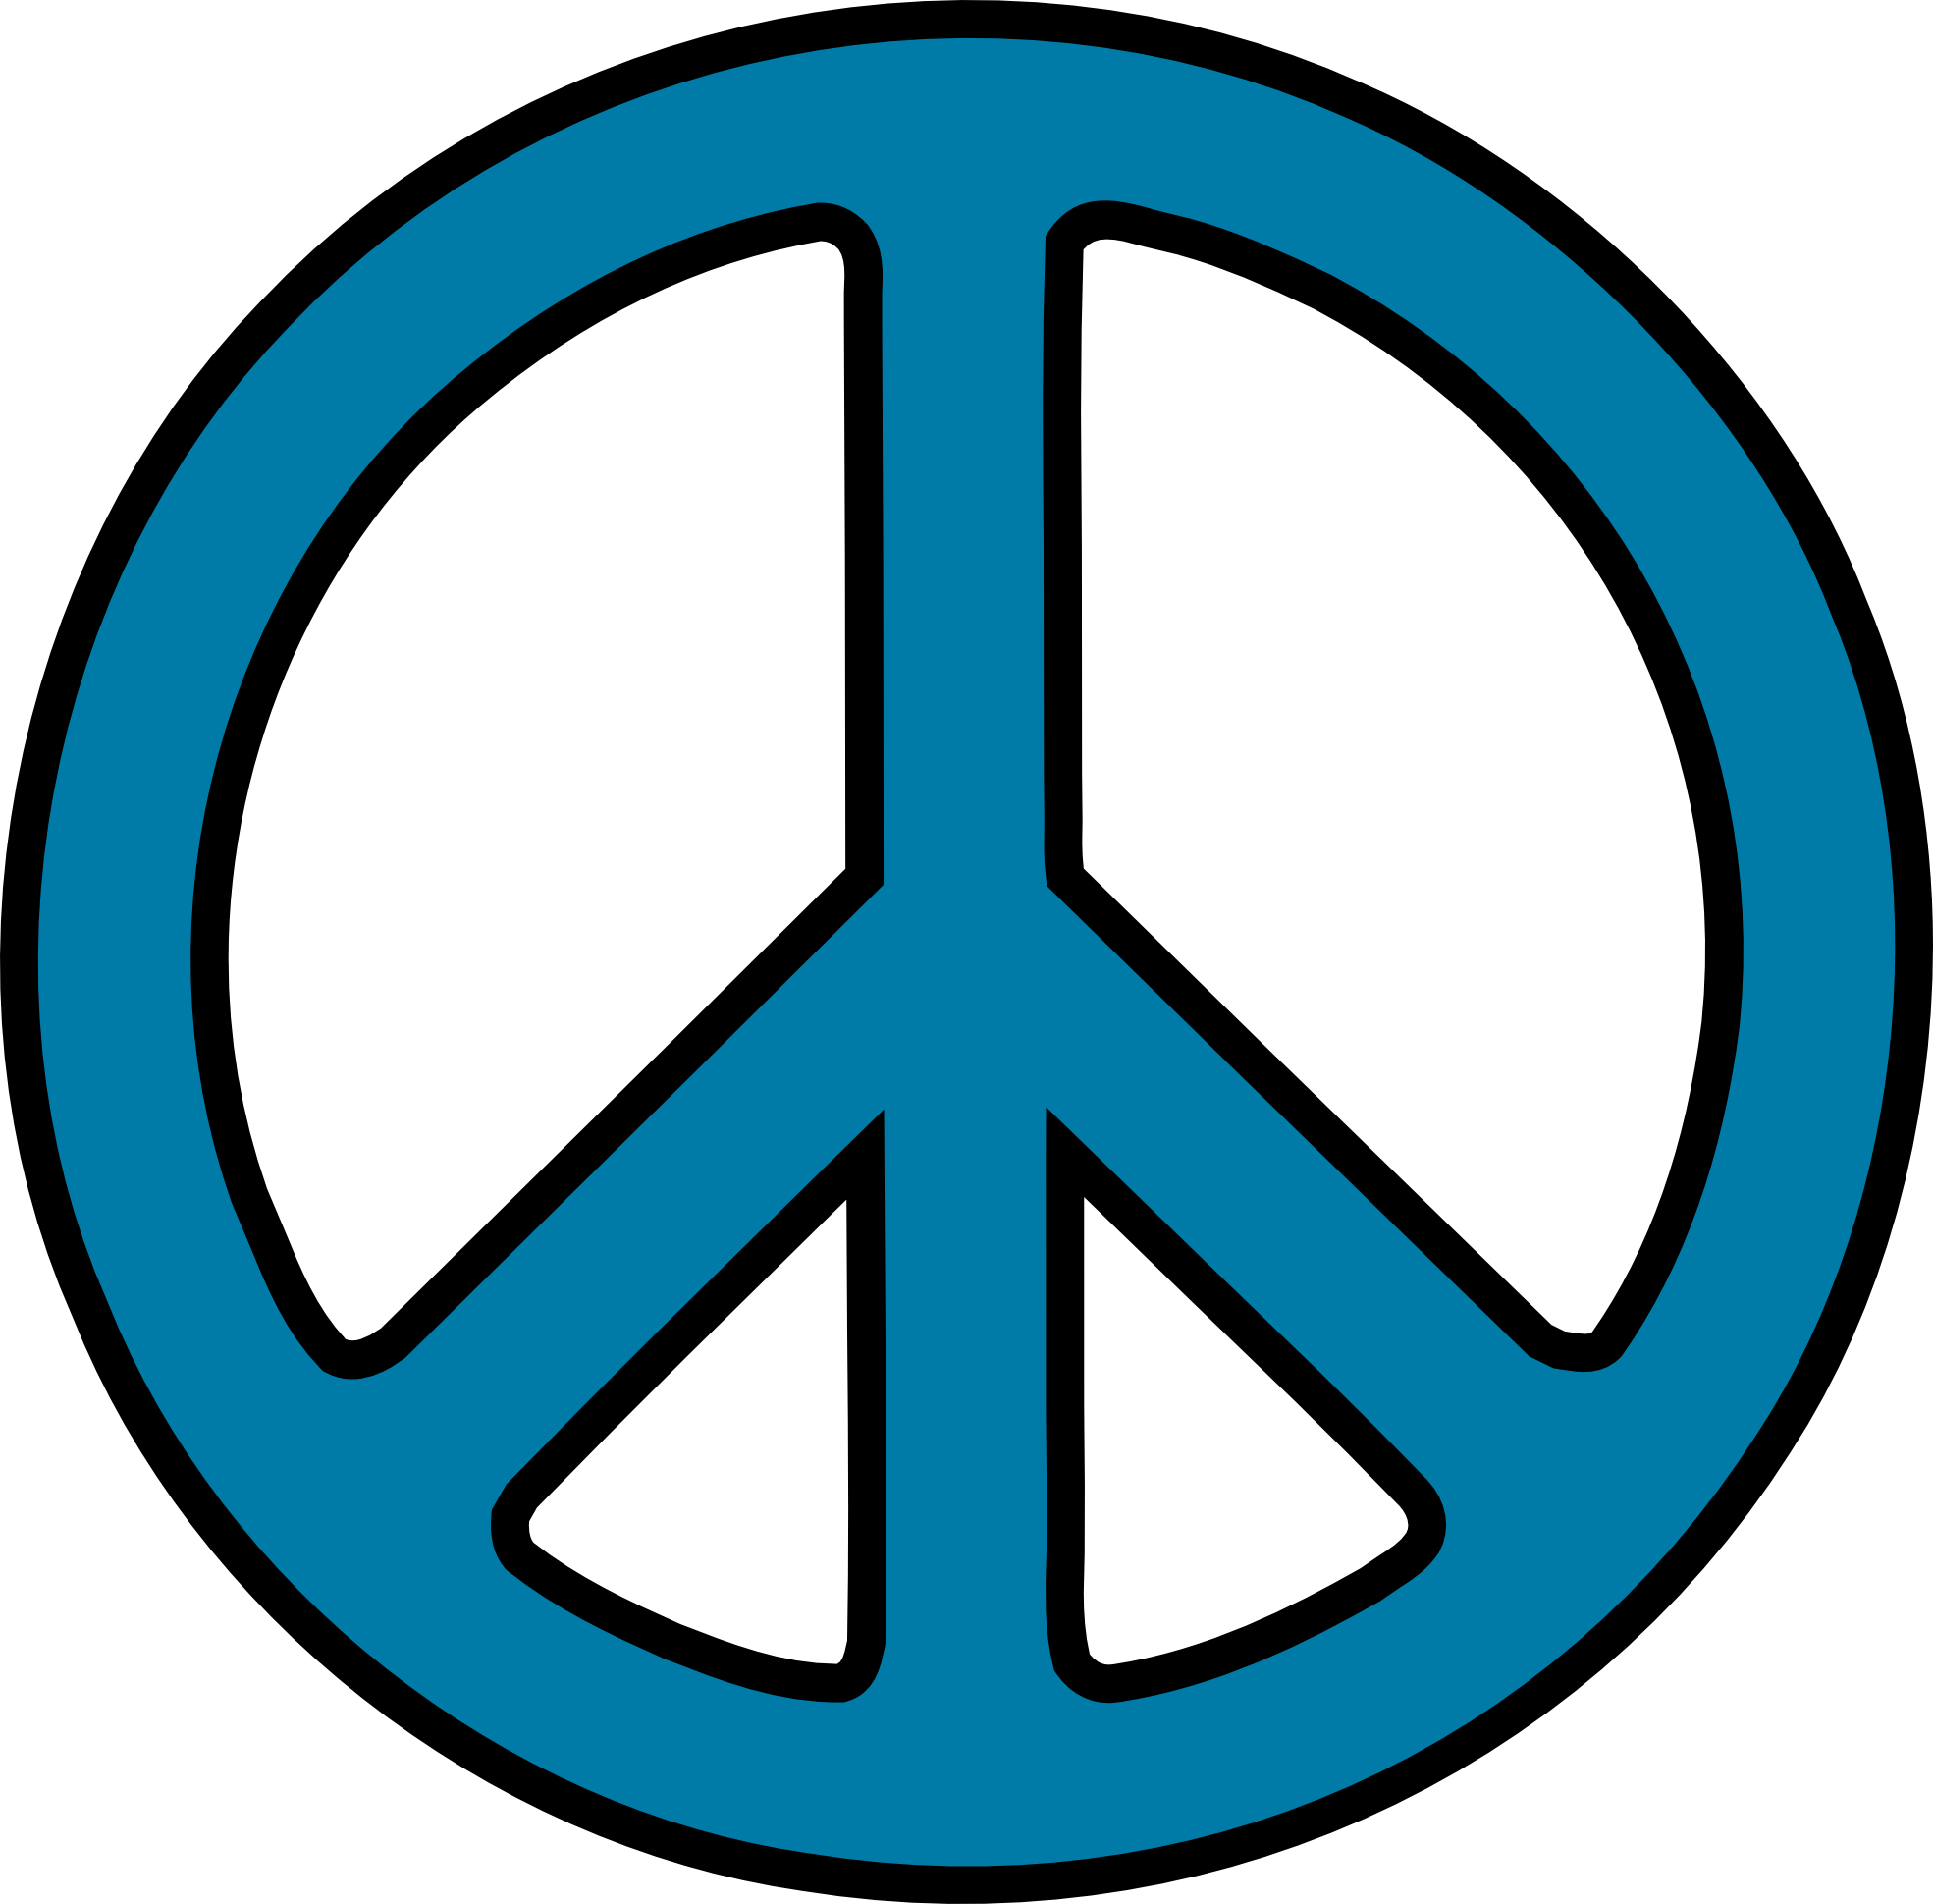 Peace sign clip art black and white free clipart 2